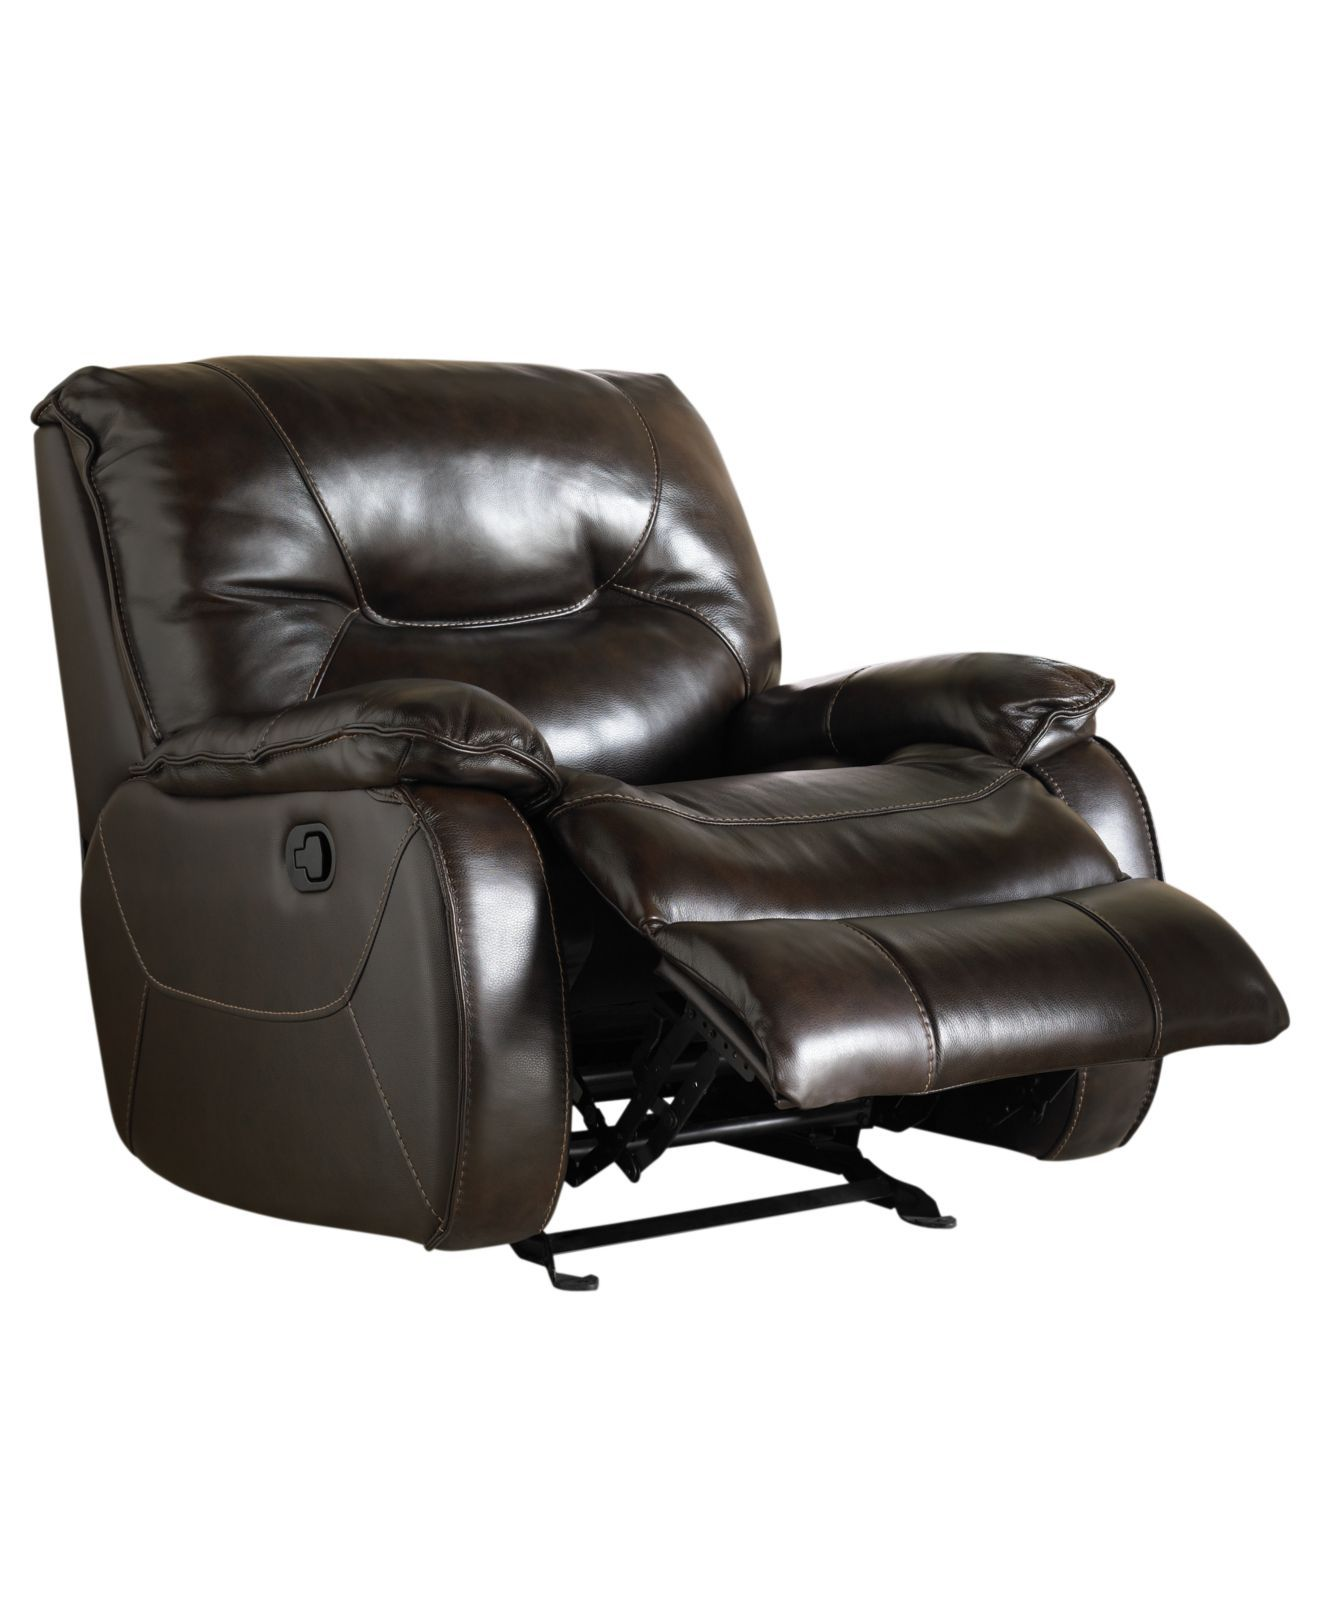 dante leather recliner chair glider chairs recliners rh pinterest com